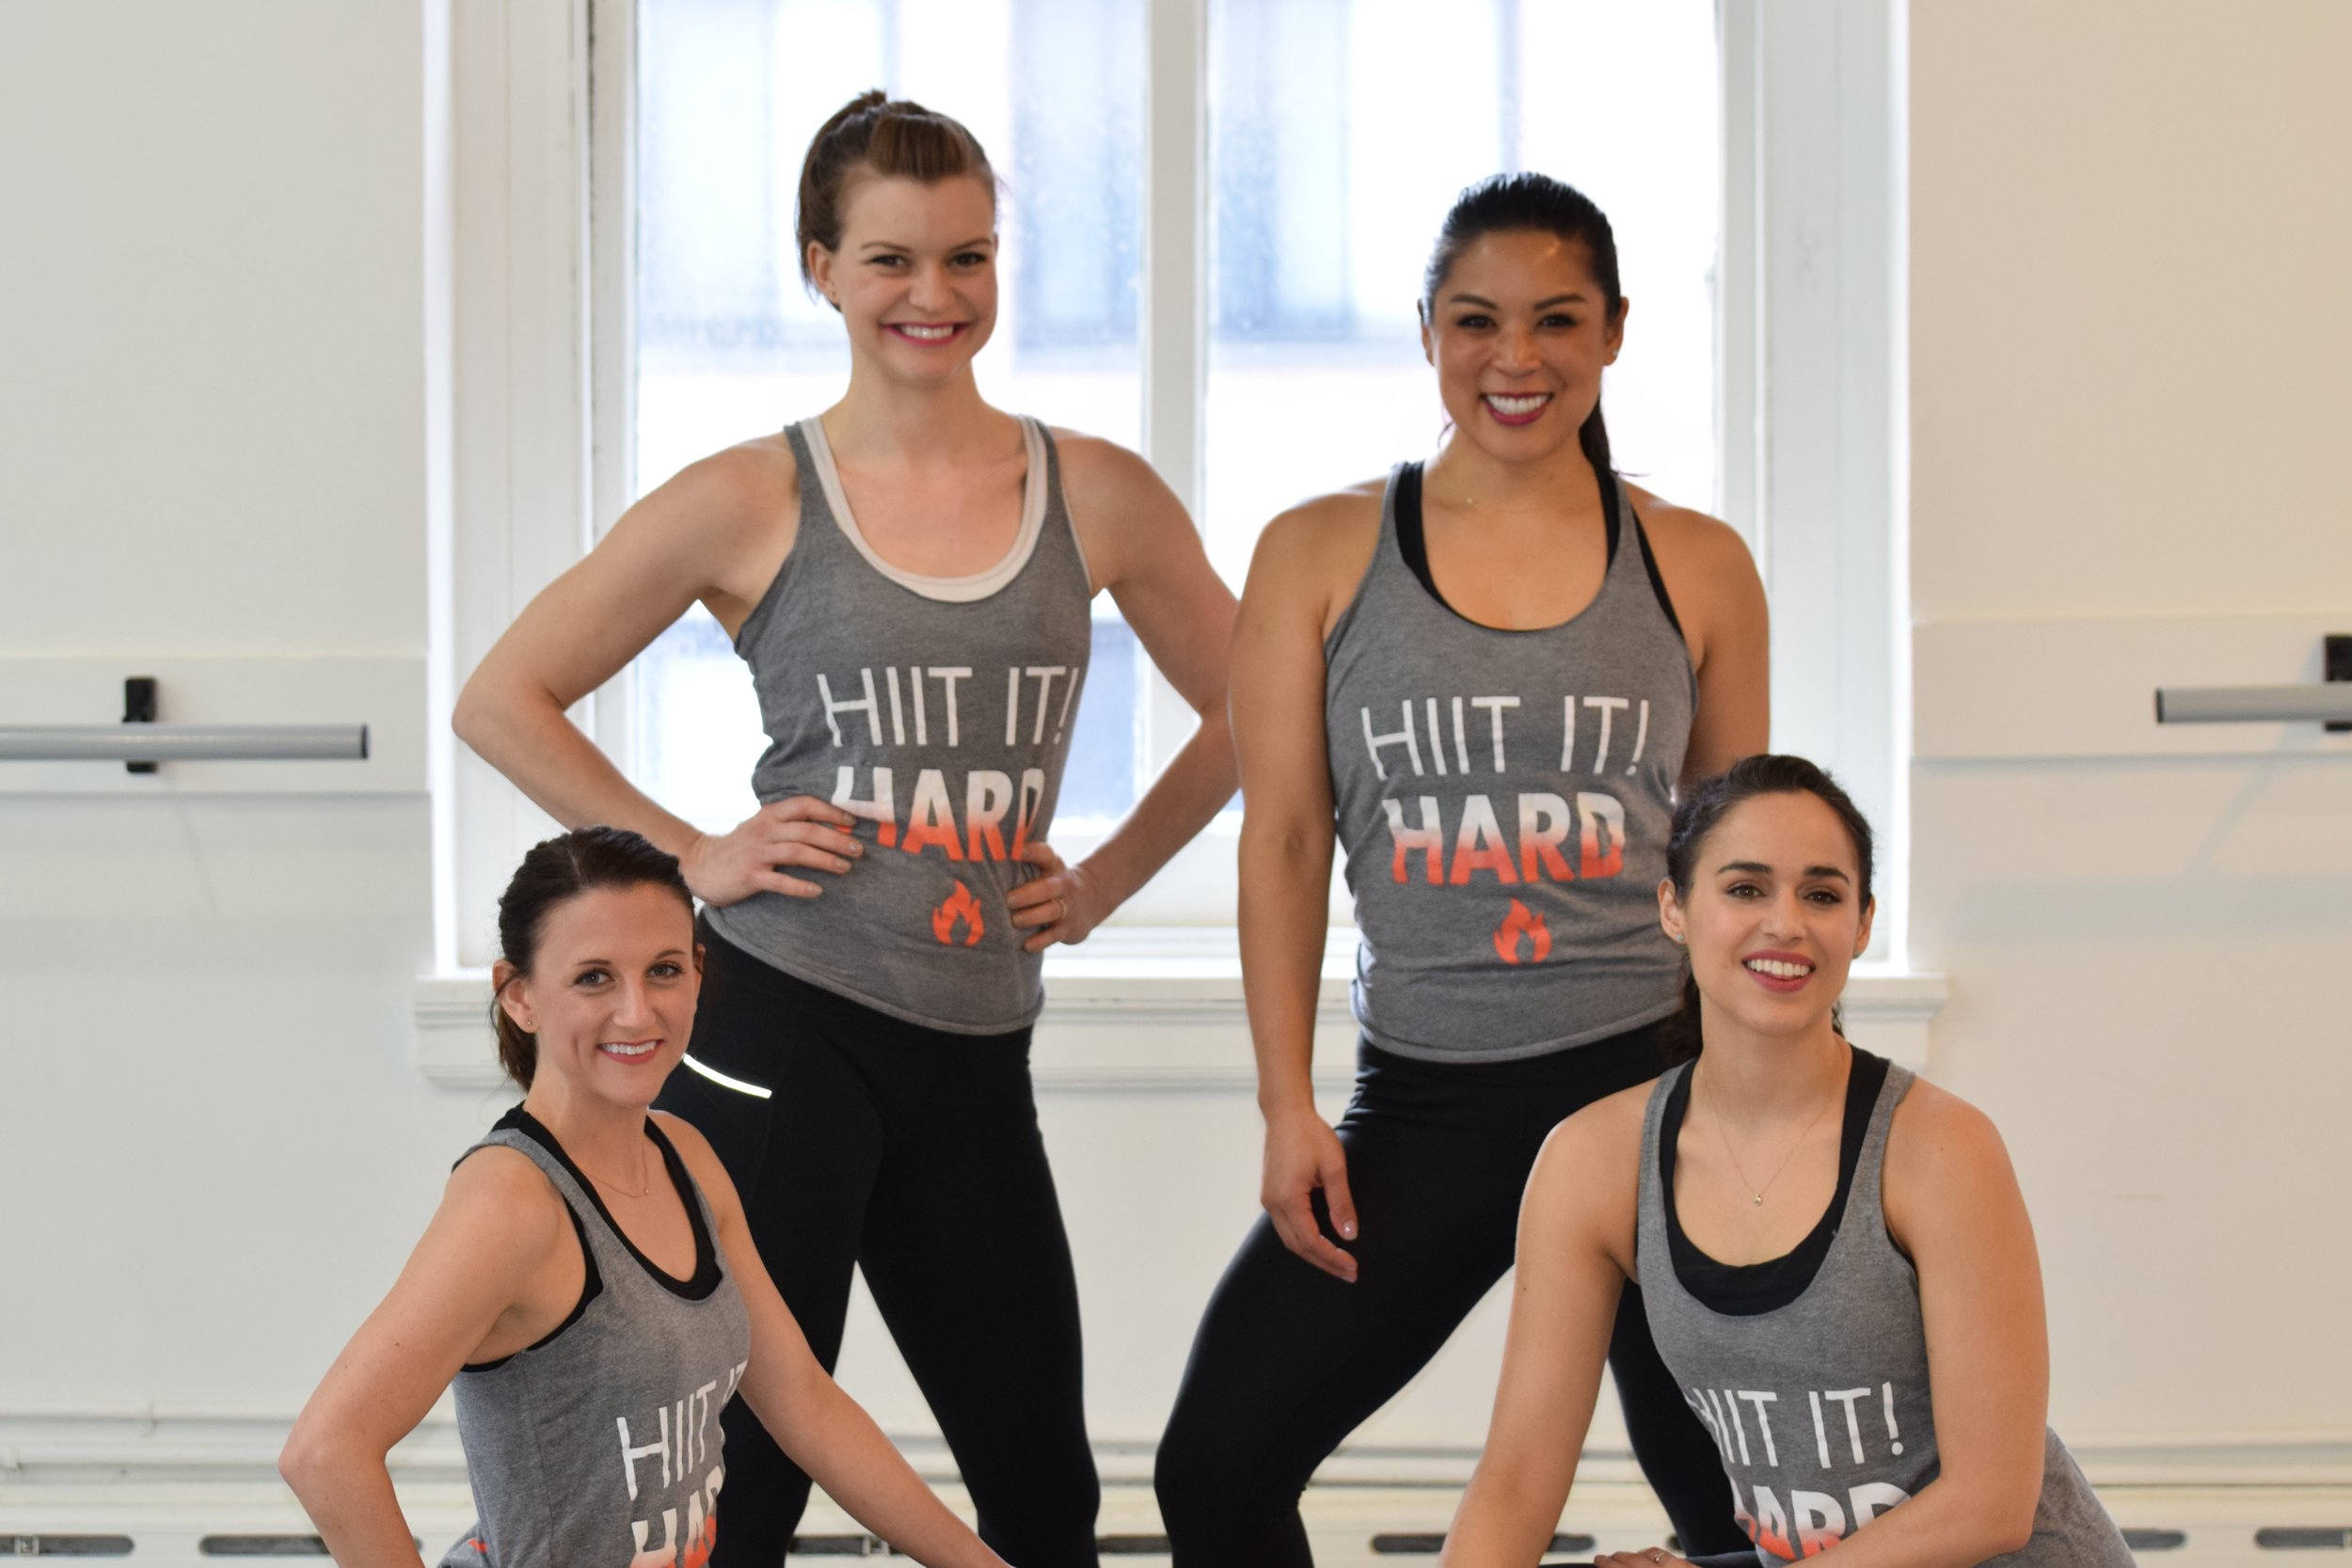 Meet your HIIT IT! instructors! From left to right, Helene Darmanin, Daphnie Yang, Whitney Biaggi and Tricia Cramer.